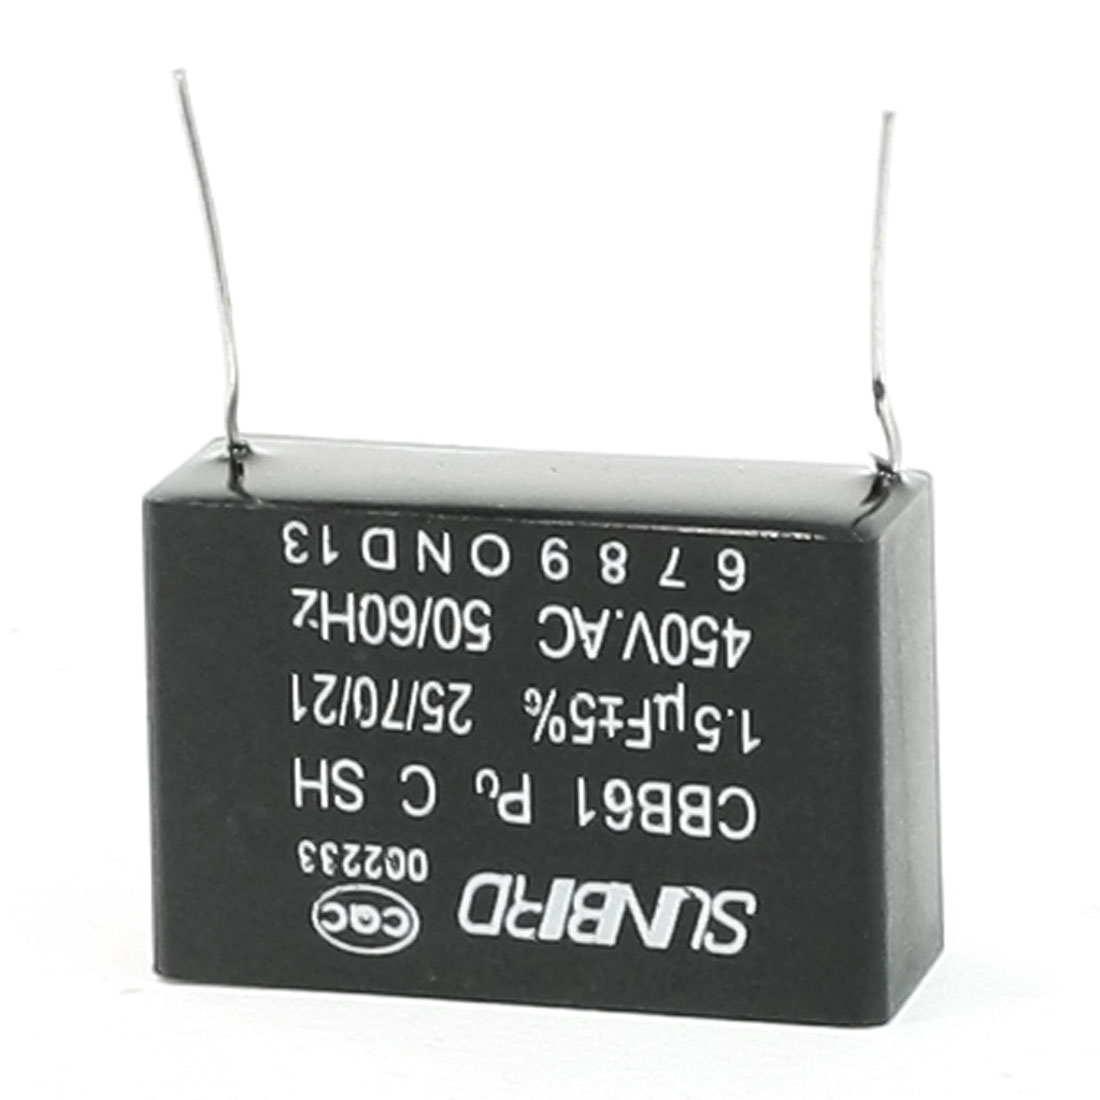 Air Conditioner Motor Run Capacitor 1.5uF 5% AC 450V 50/60 Hz